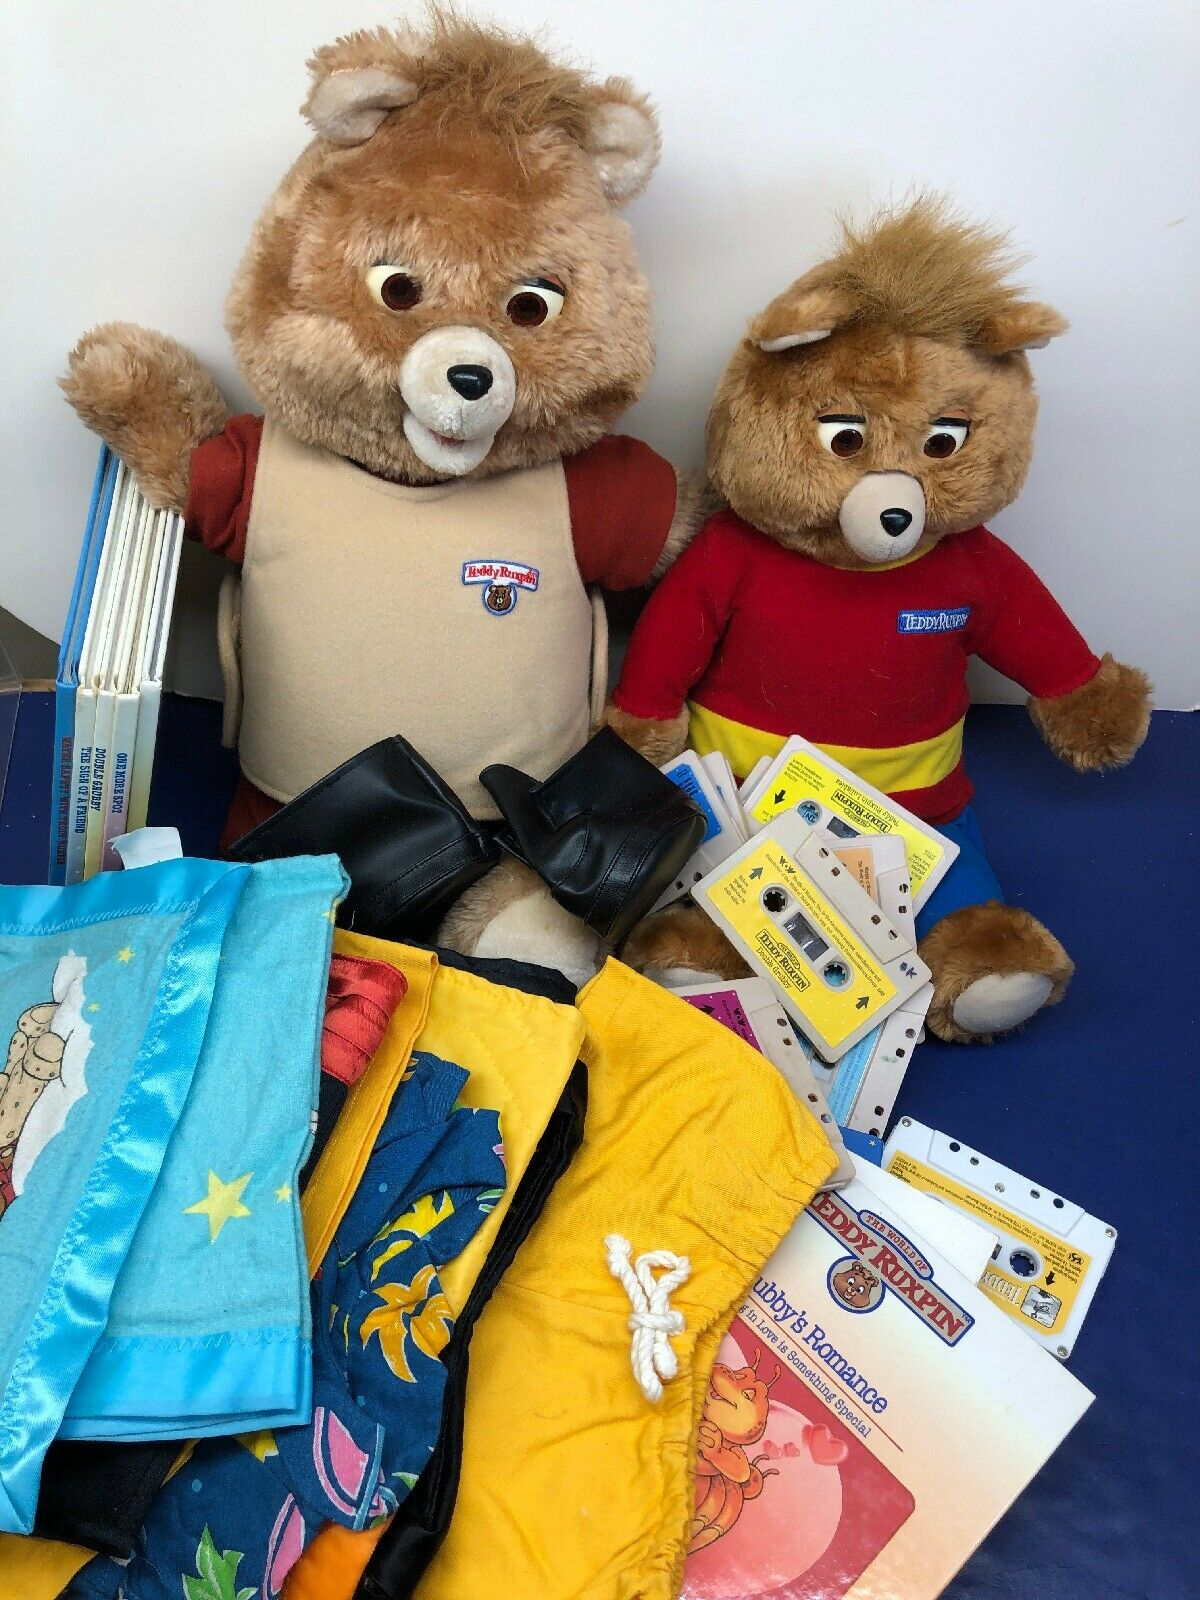 2 Teddy Ruxpin Bears Vintage 1985 Both Do Not Work Has Books, Outfits, Cassettes